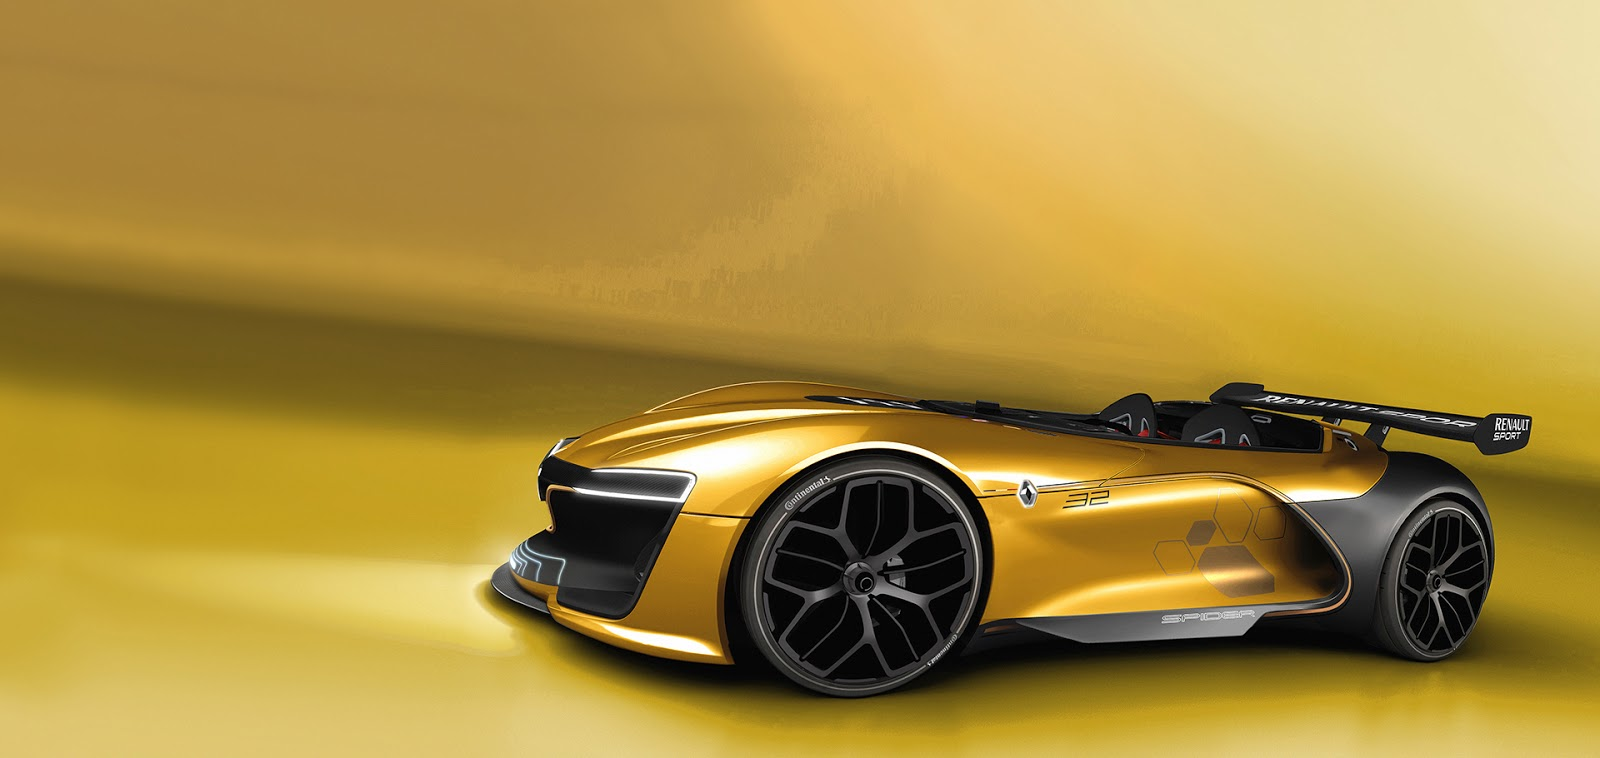 8 Seater Vehicles >> This Race-Focused Renault Spider Gets Our Approval | Carscoops